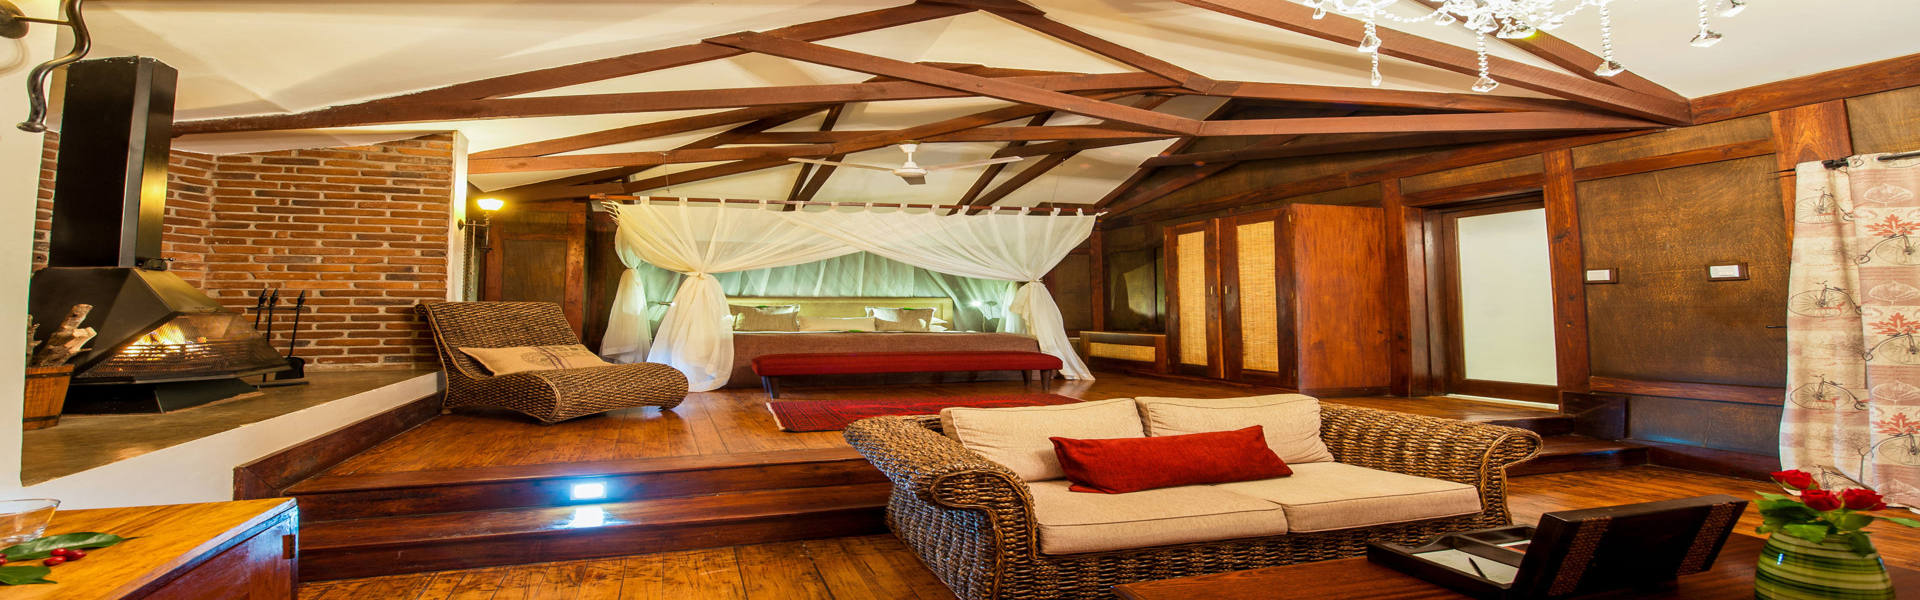 Arusha Coffee Lodge - Plantation Room